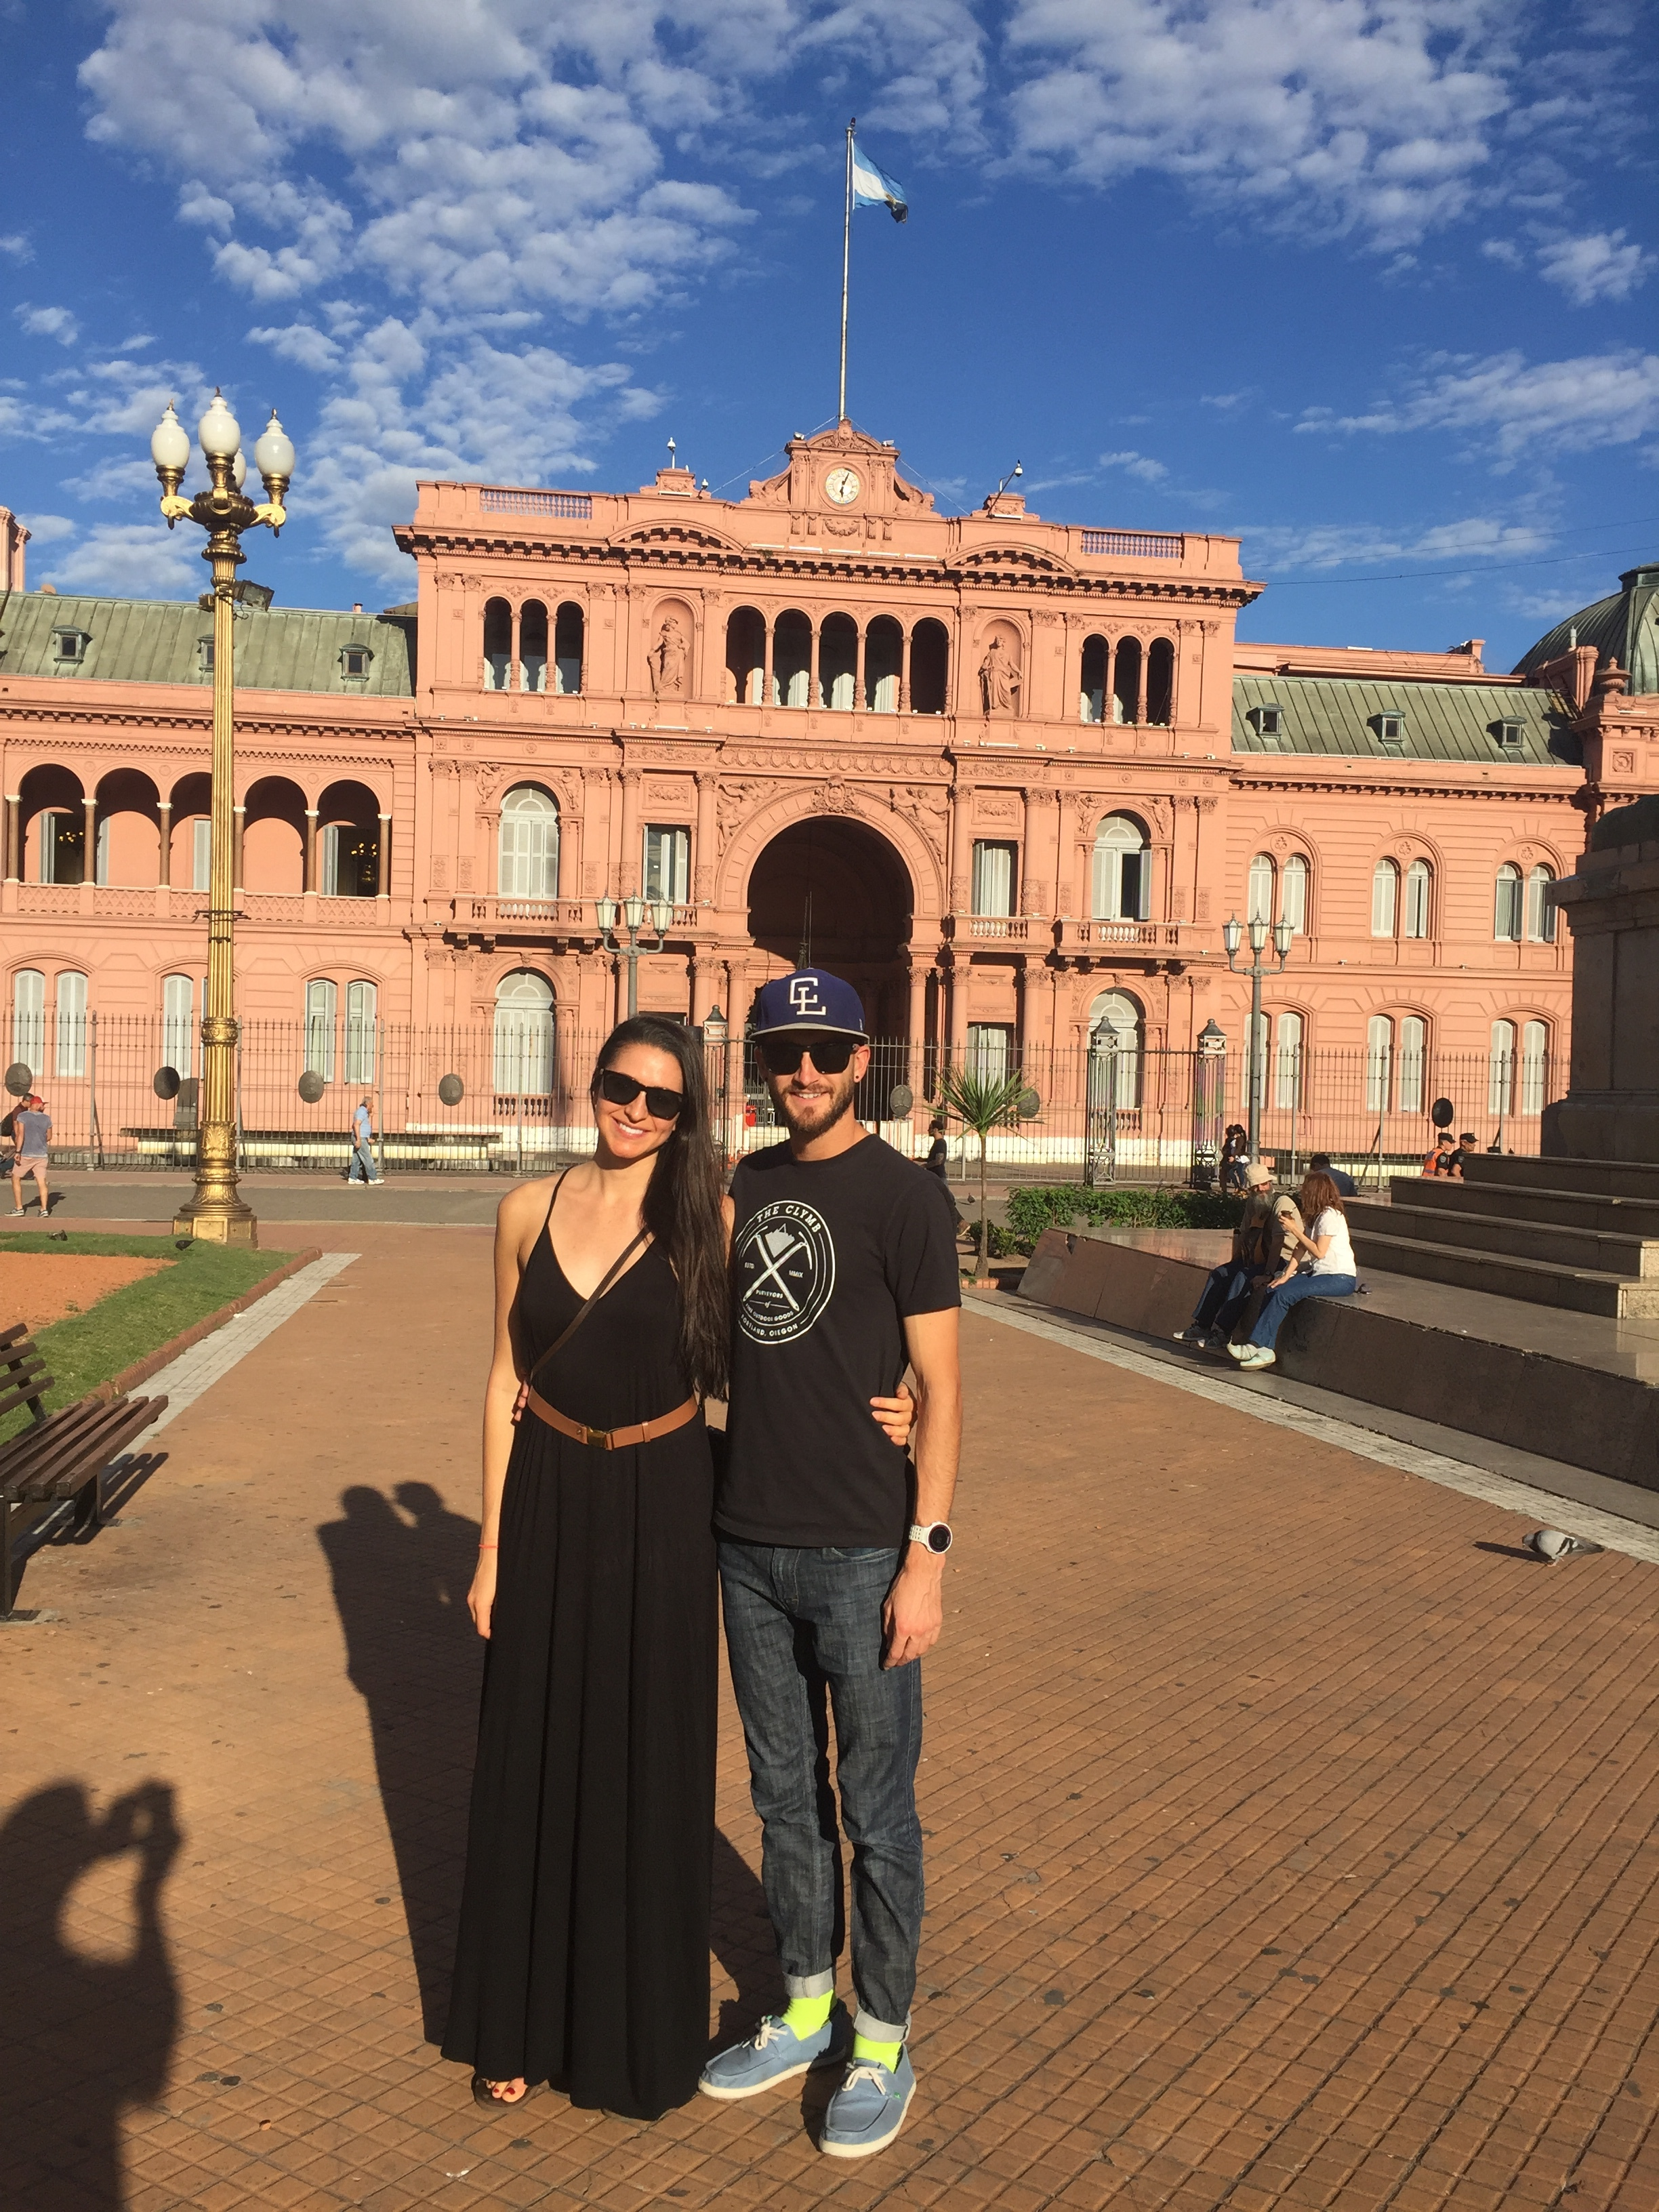 The President's house in Buenos Aires, Argentina.  Kim and I celebrated a year together while traveling!